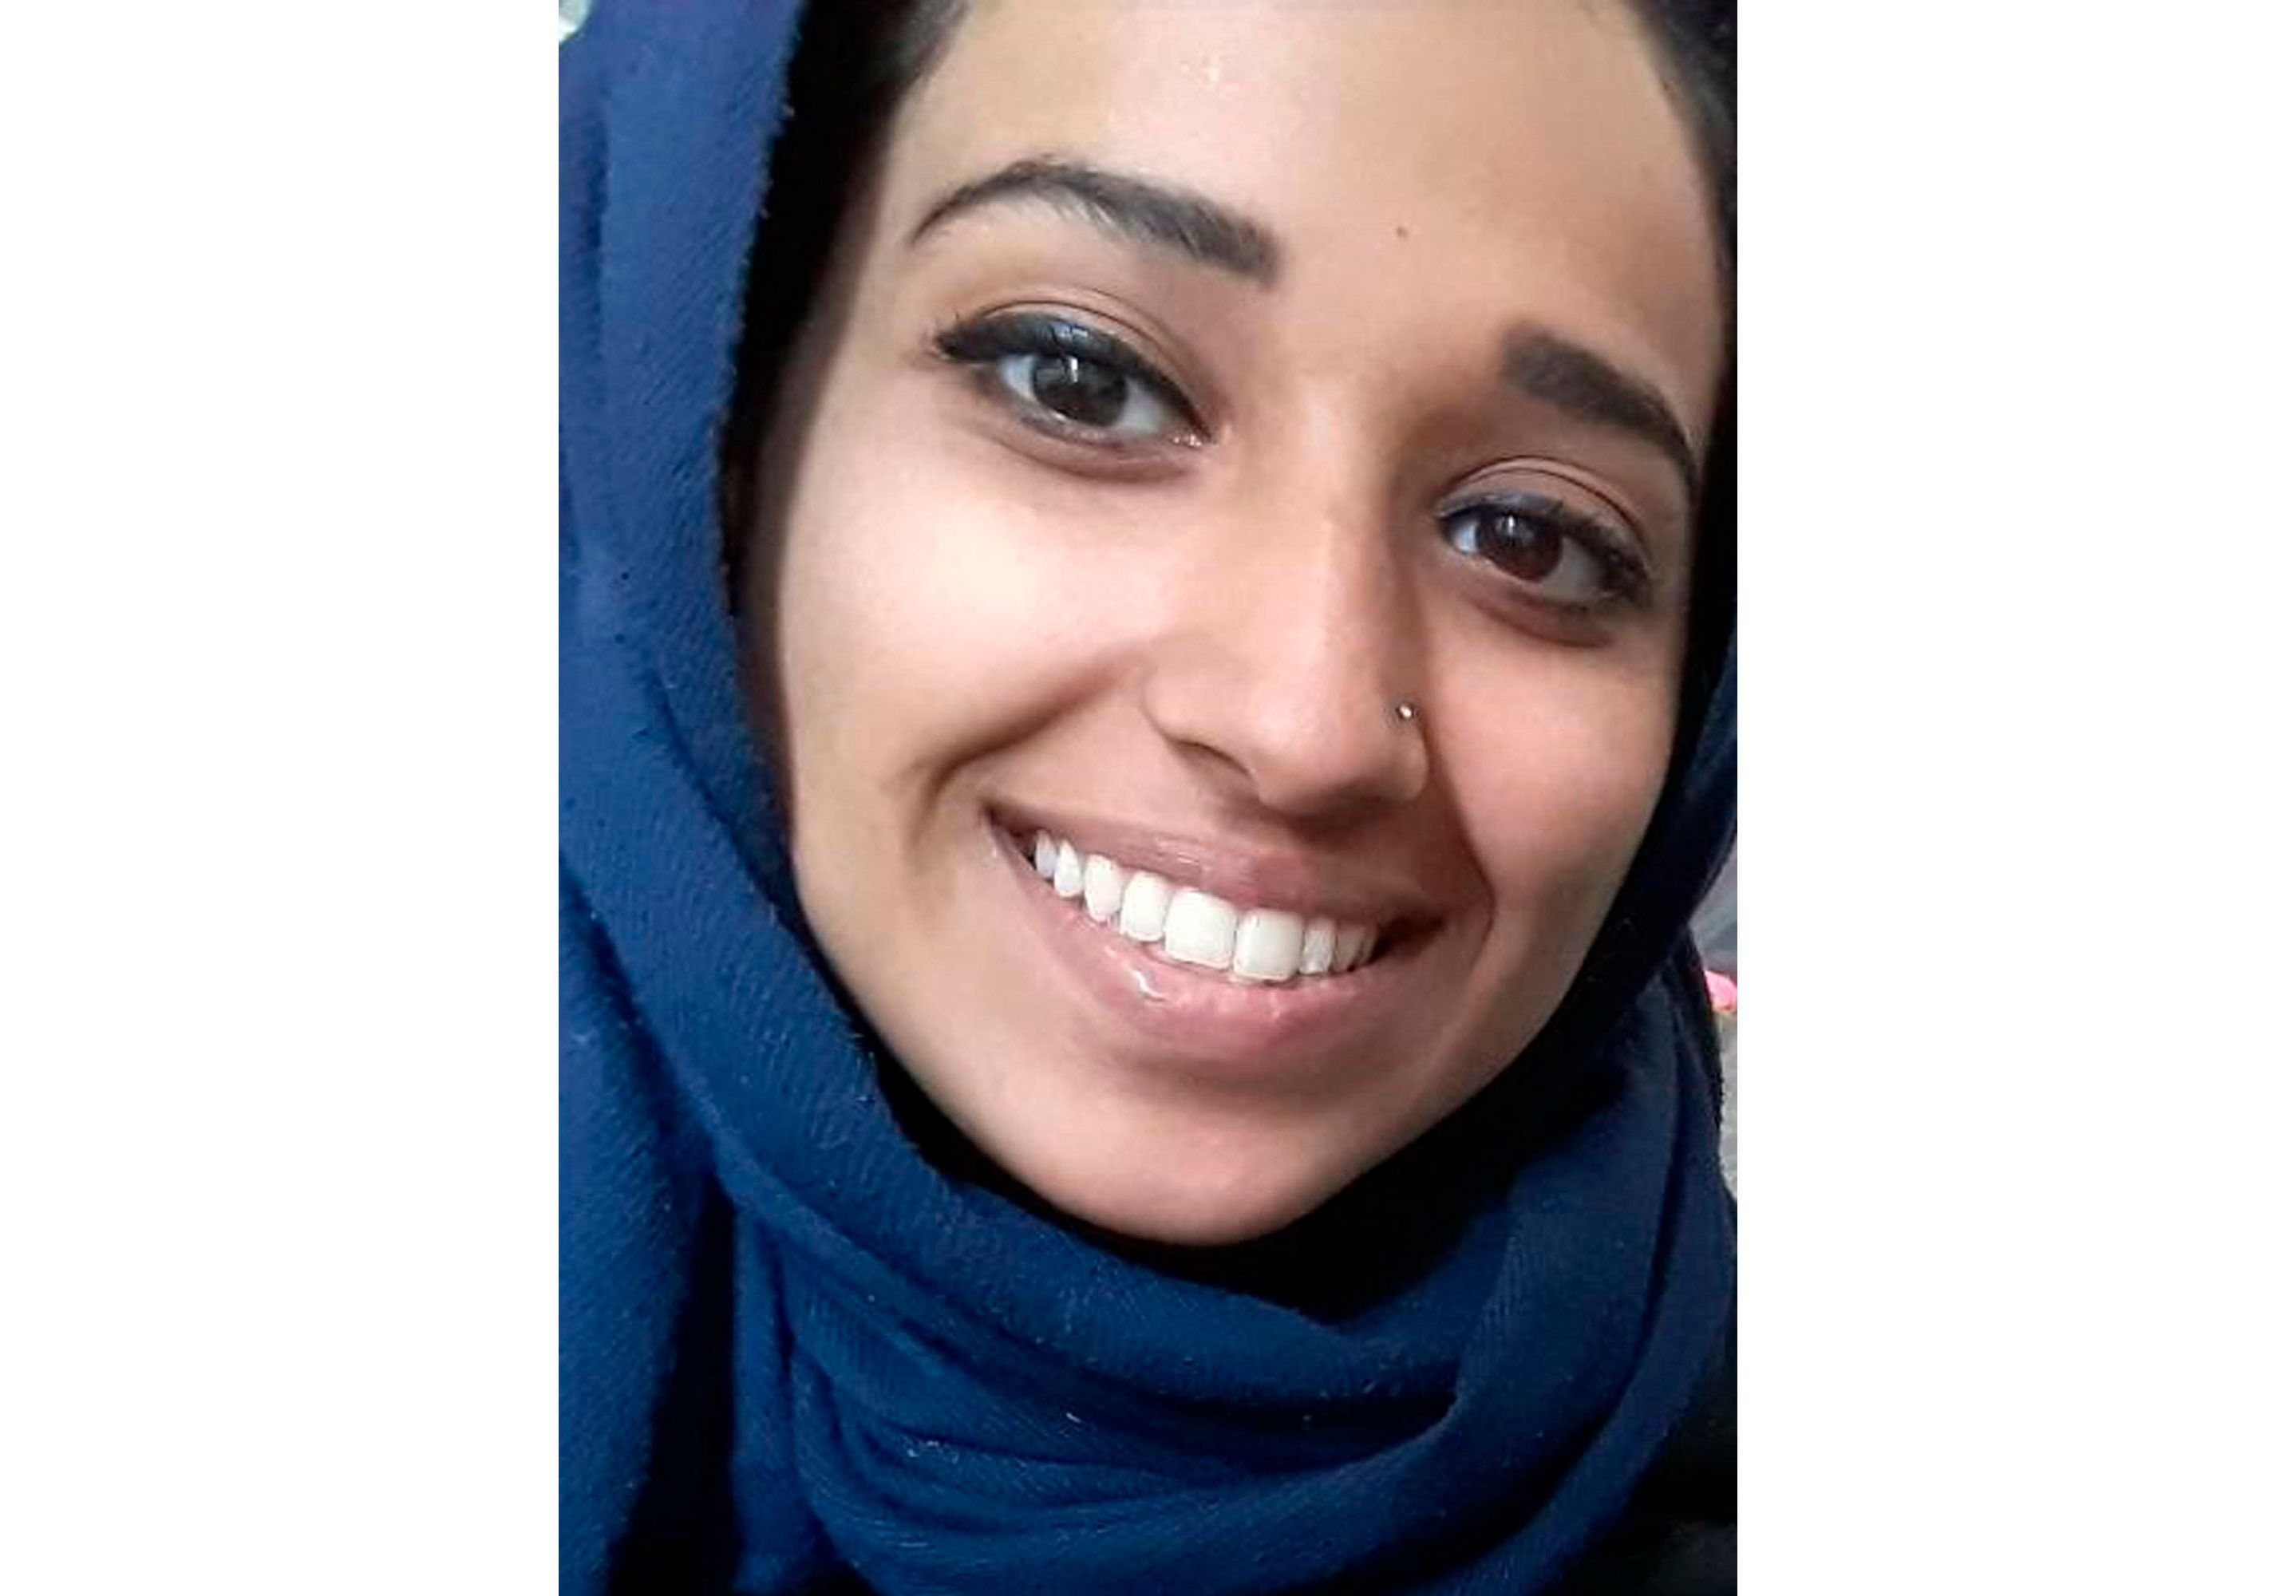 This undated image provided by attorney Hassan Shibly shows Hoda Muthana, an Alabama woman who left home to join the Islamic State after becoming radicalized online. Muthana realized she was wrong and now wants to return to the United States, Shibly, a lawyer for her family said Tuesday, Feb. 19, 2019. (Hoda Muthana/Attorney Hassan Shibly via AP)